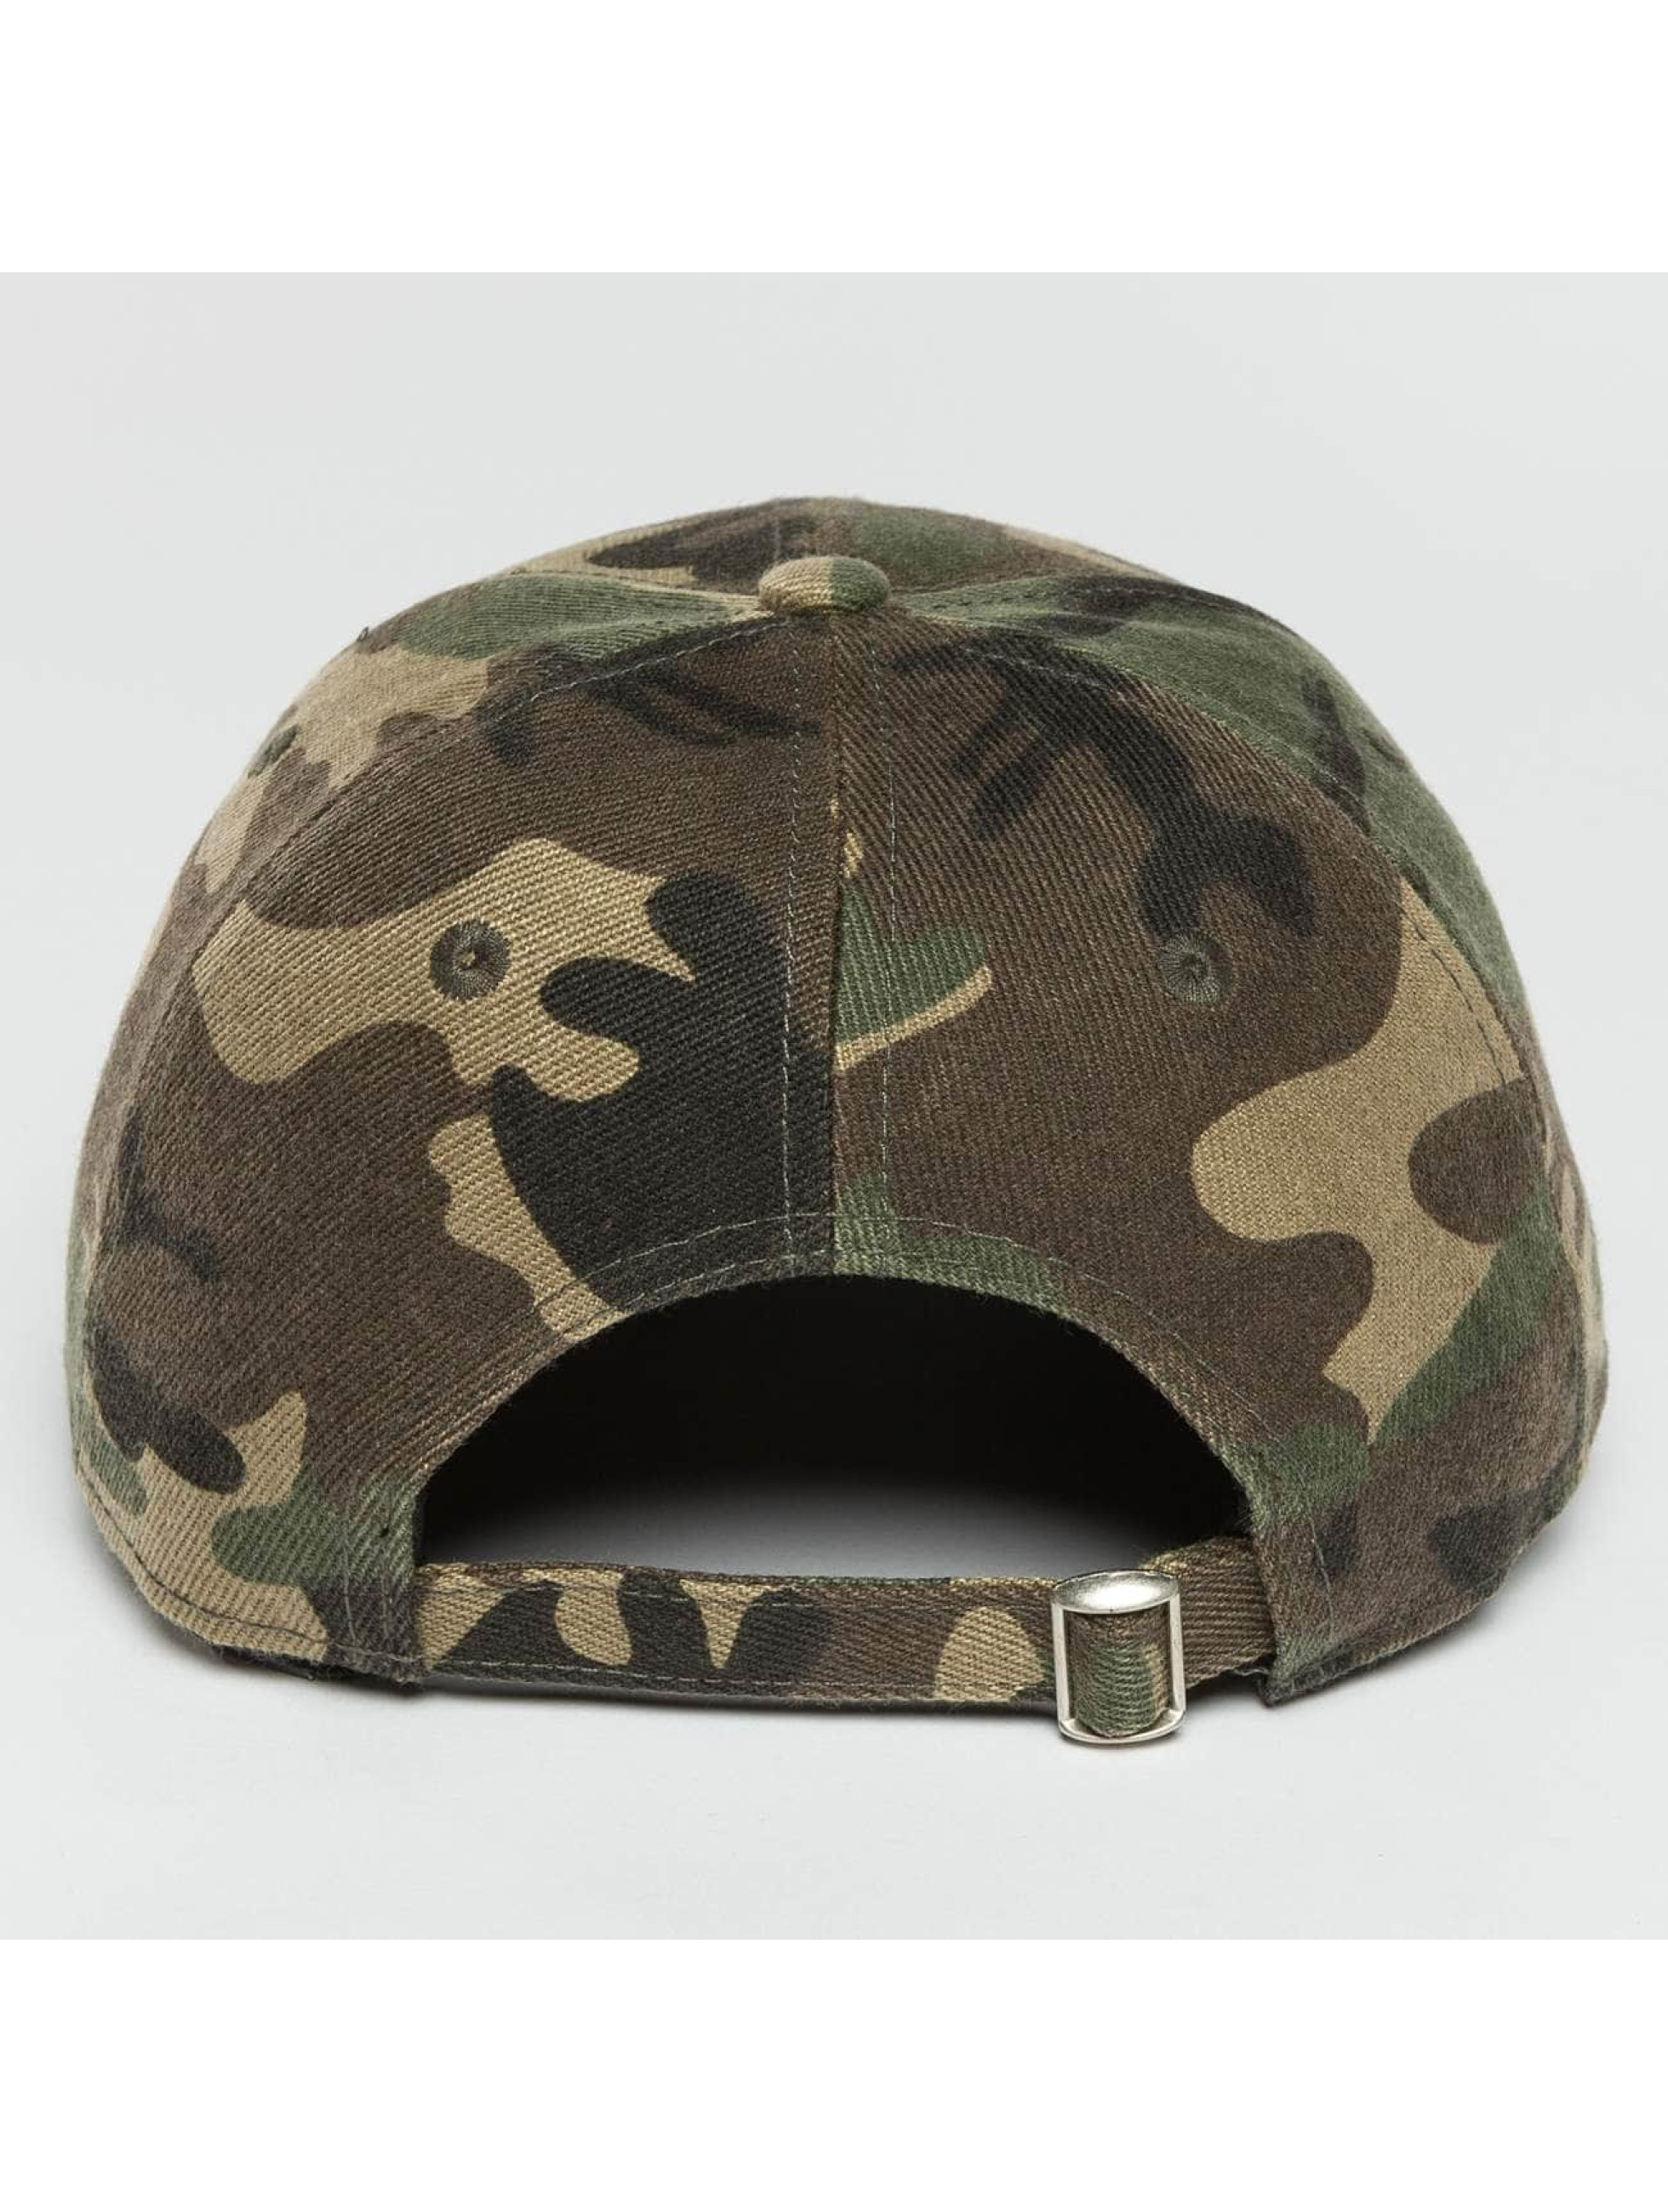 Distorted People Snapback Cap Blades camouflage